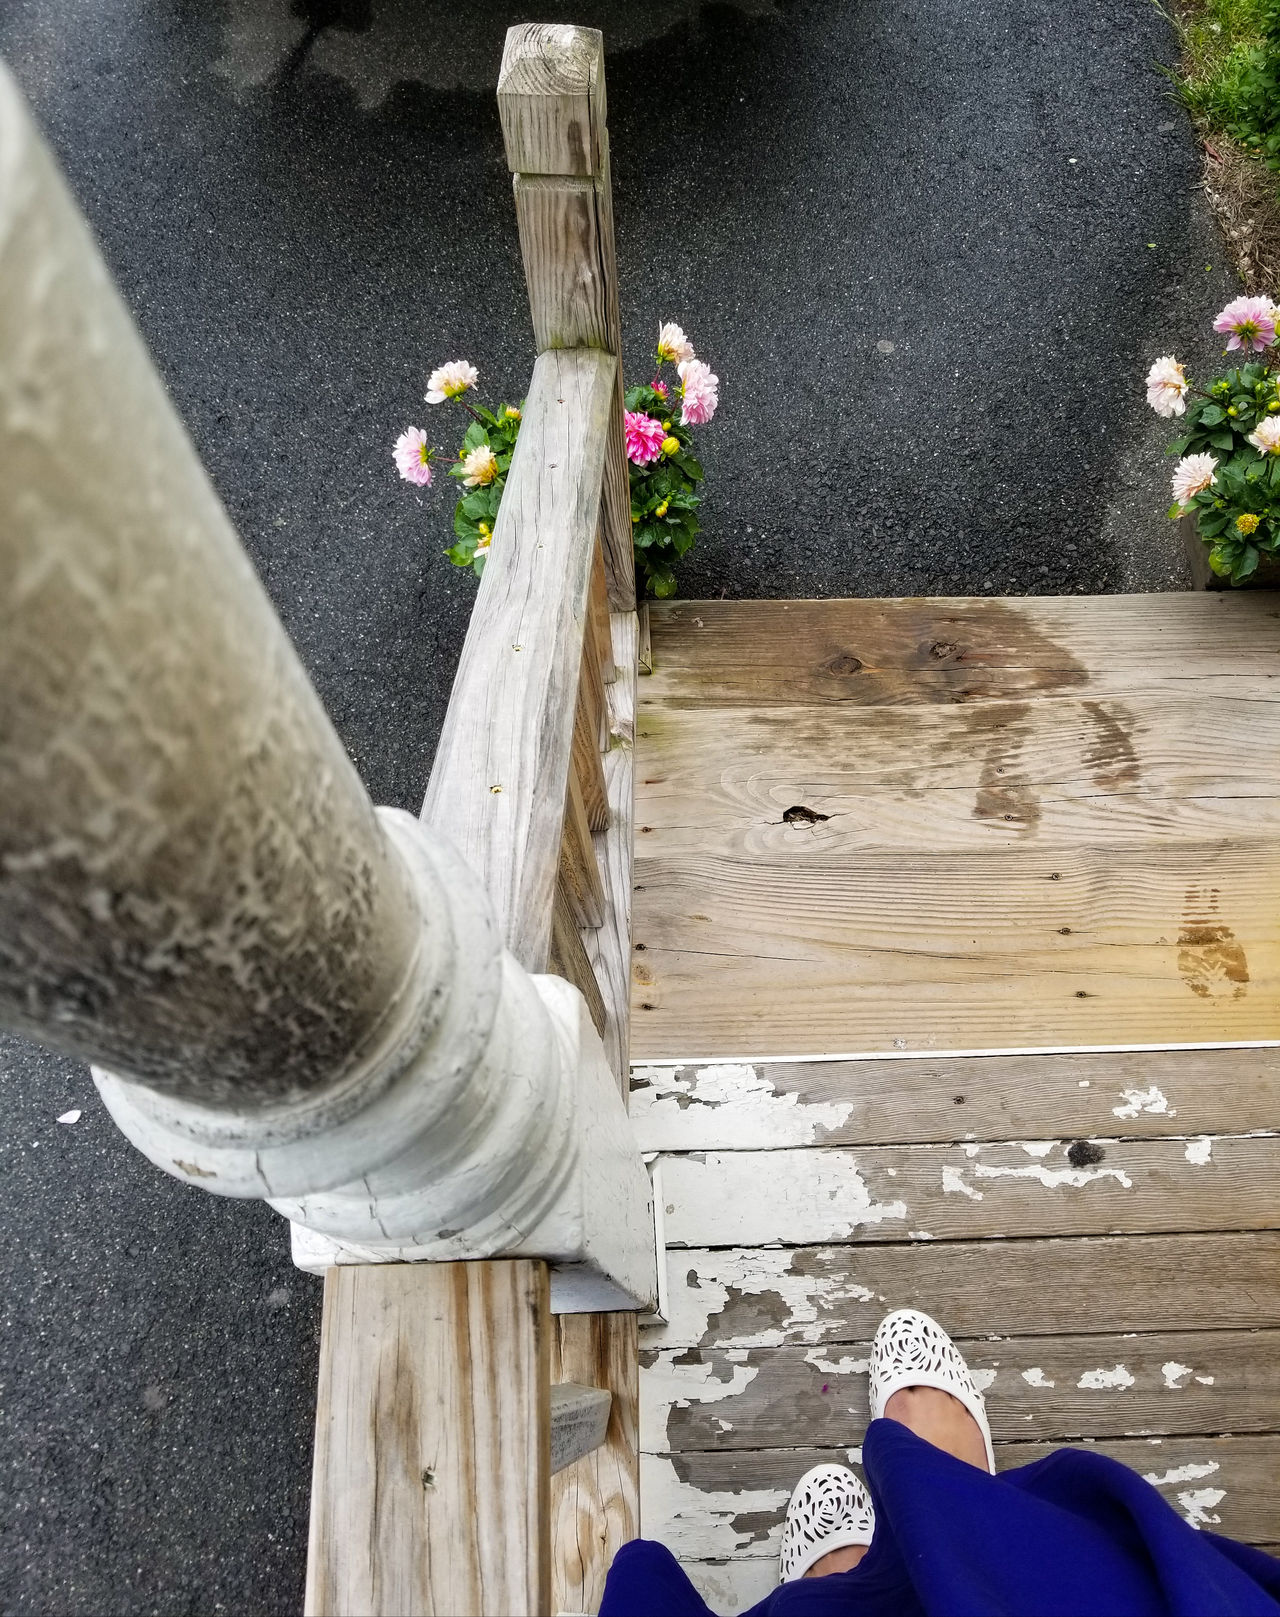 Wood - Material Shoe Day High Angle View Low Section Human Leg Outdoors WaterAngles And Views Front Porch Photography Close-up Built Structure Building Exterior Fragility People Rainy Day Photography White Shoes White Flats EyeEmNewHere Home Place Of Heart Live For The Story